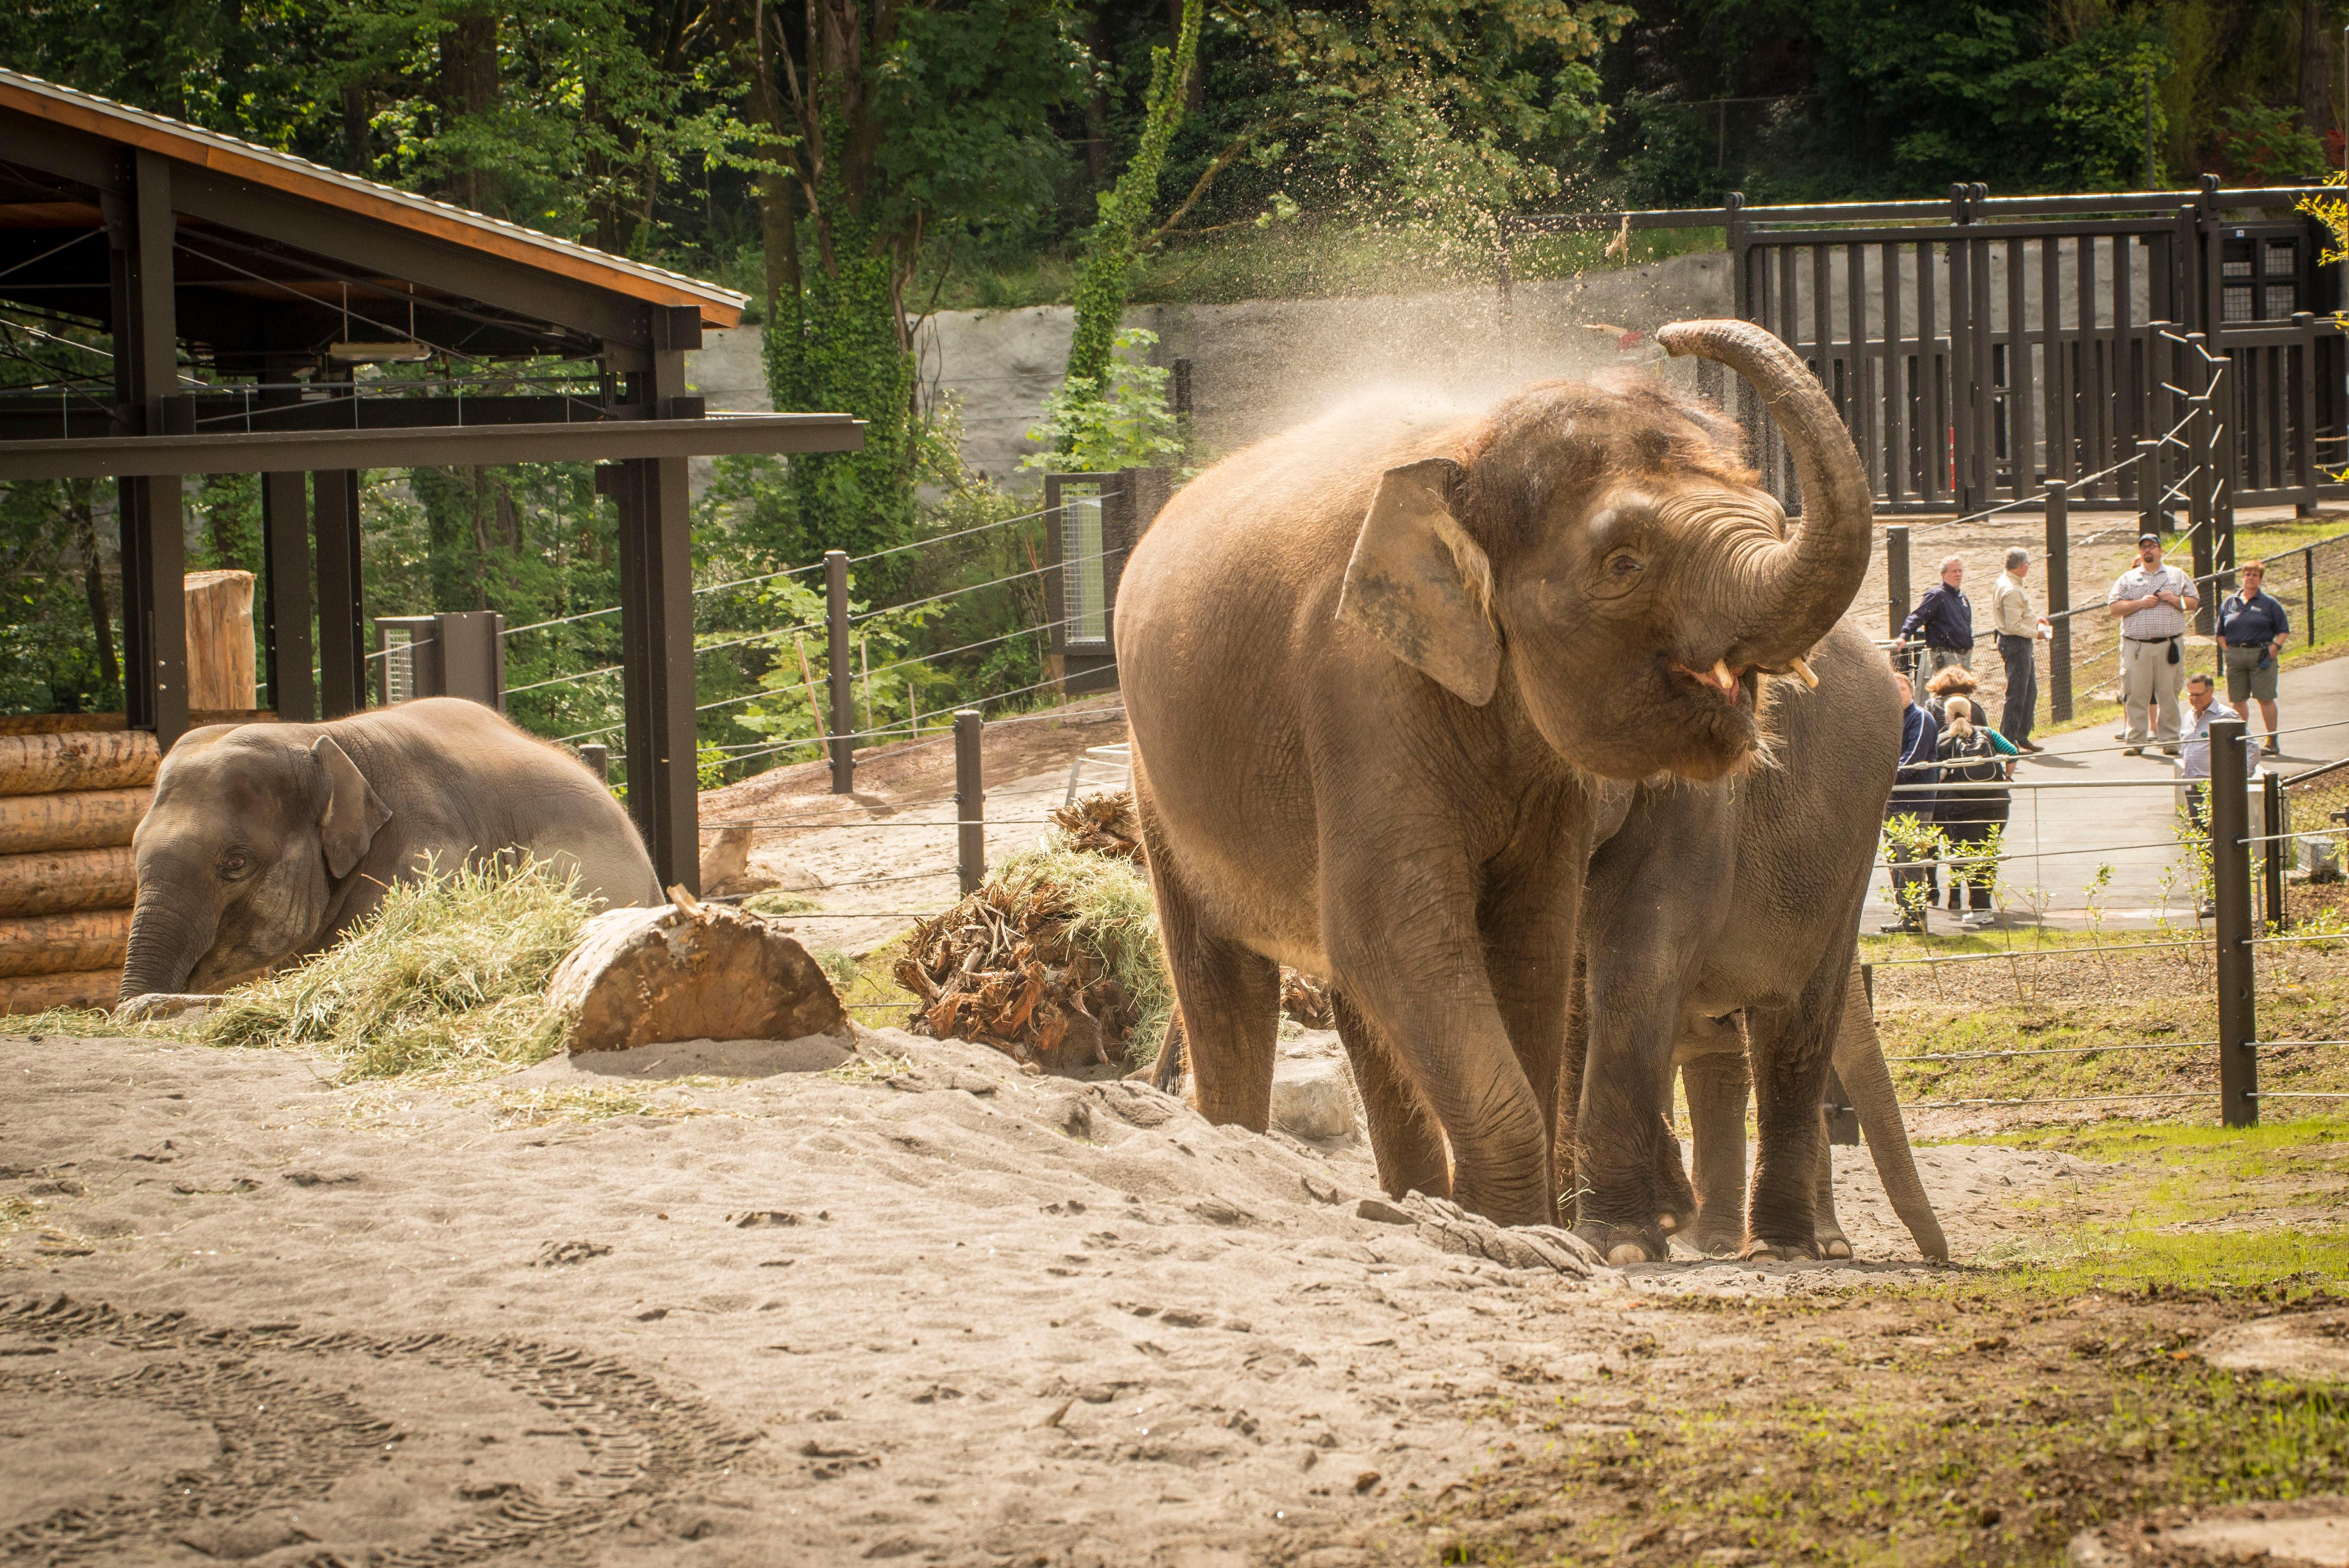 Asian elephants in the North Meadow habitat, part of Elephant Lands at the Oregon Zoo. �© Oregon Zoo / photo by Michael Durham.